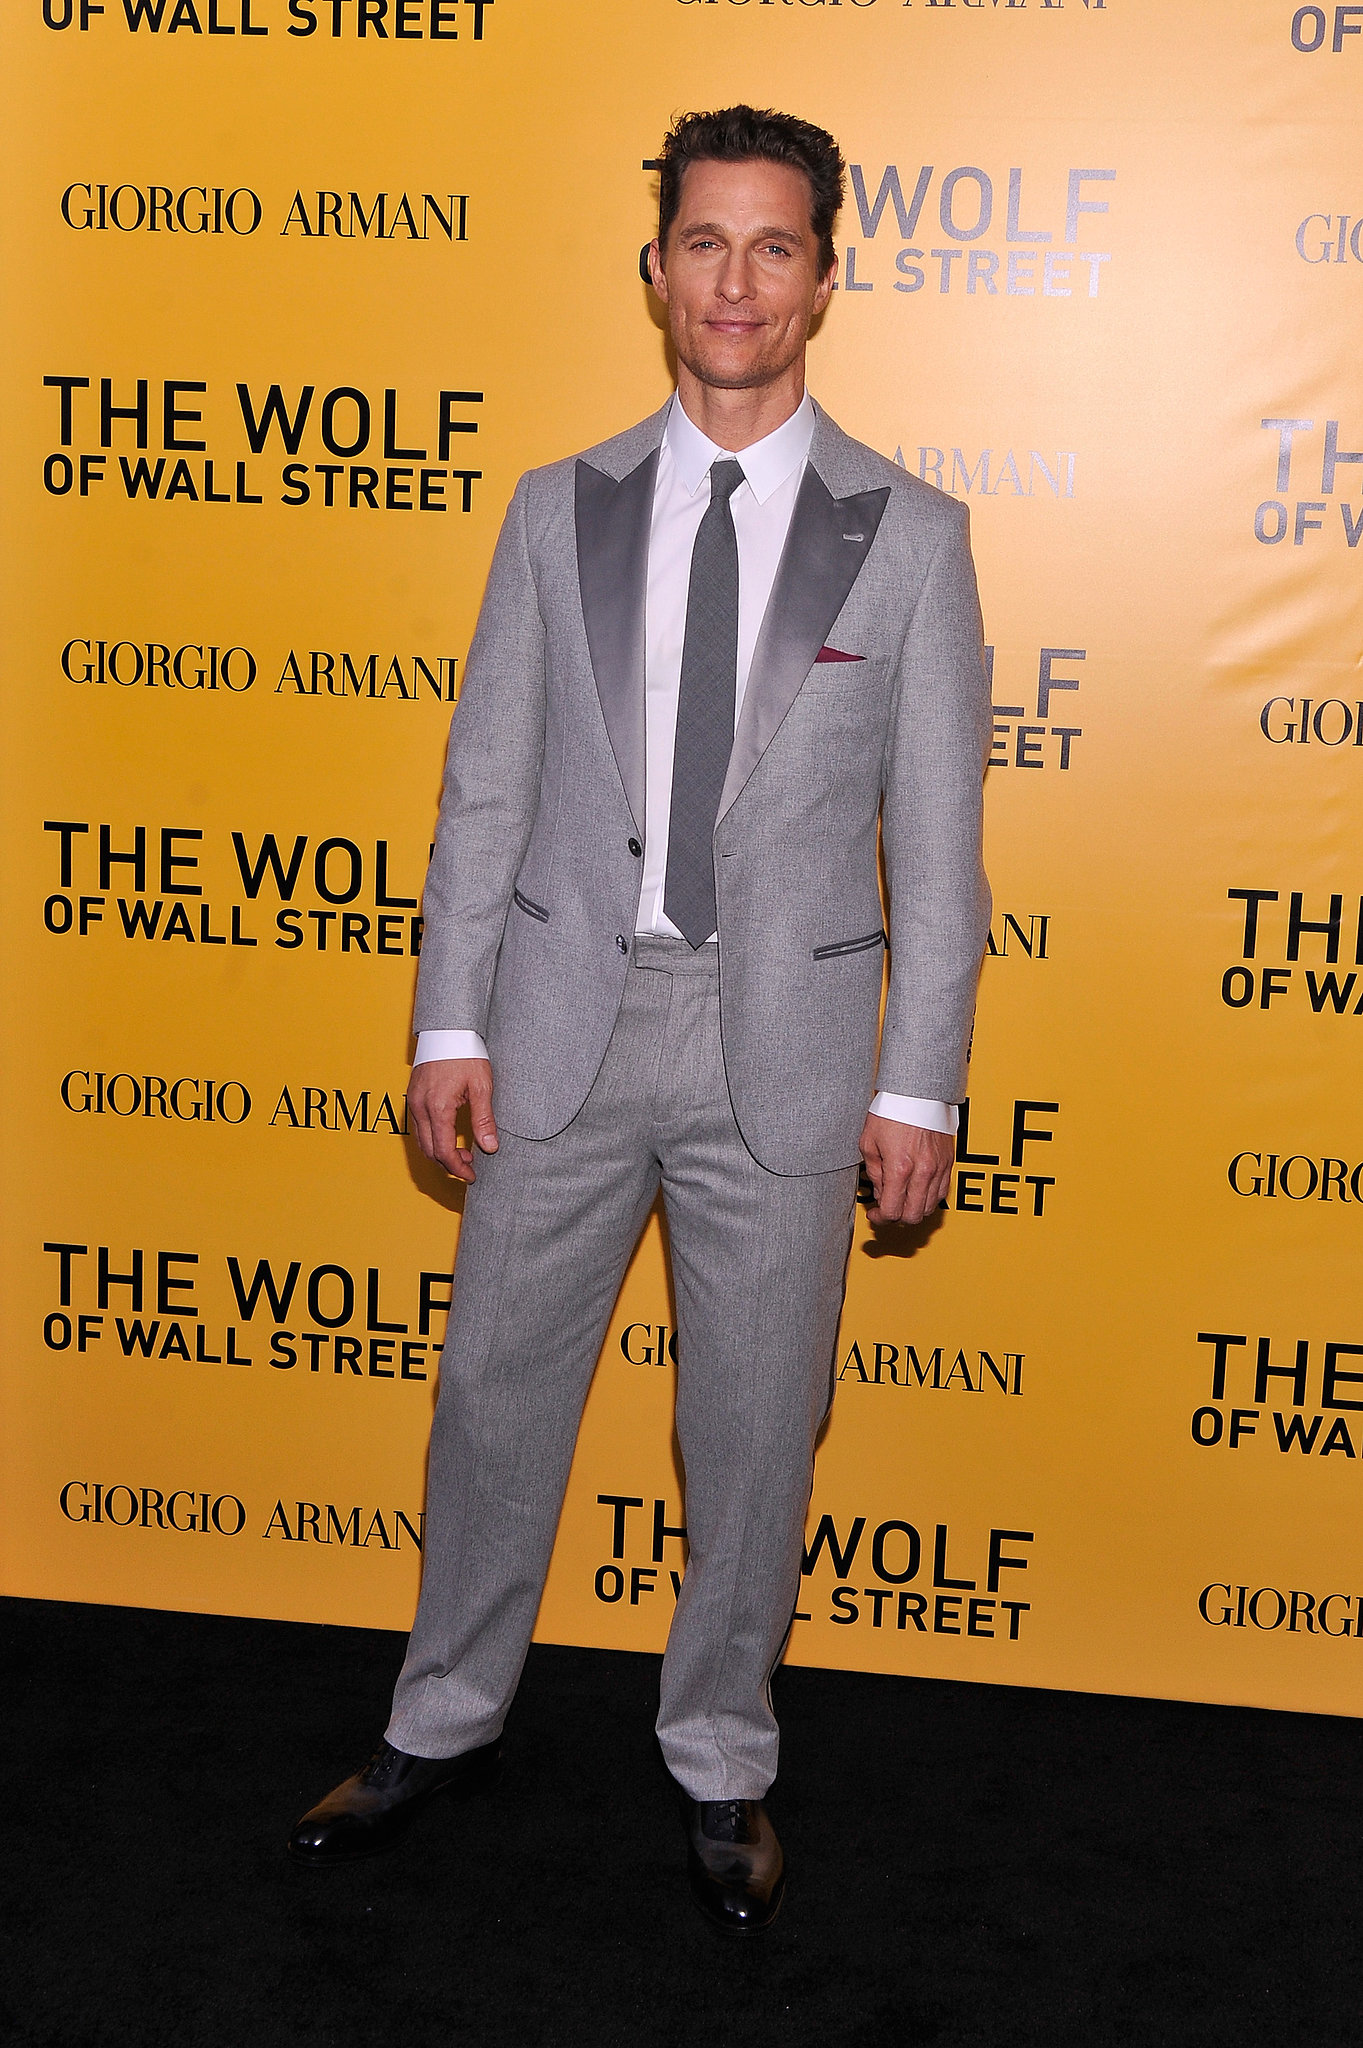 Matthew McConaughey attended the NYC premiere of The Wolf of Wall Street.